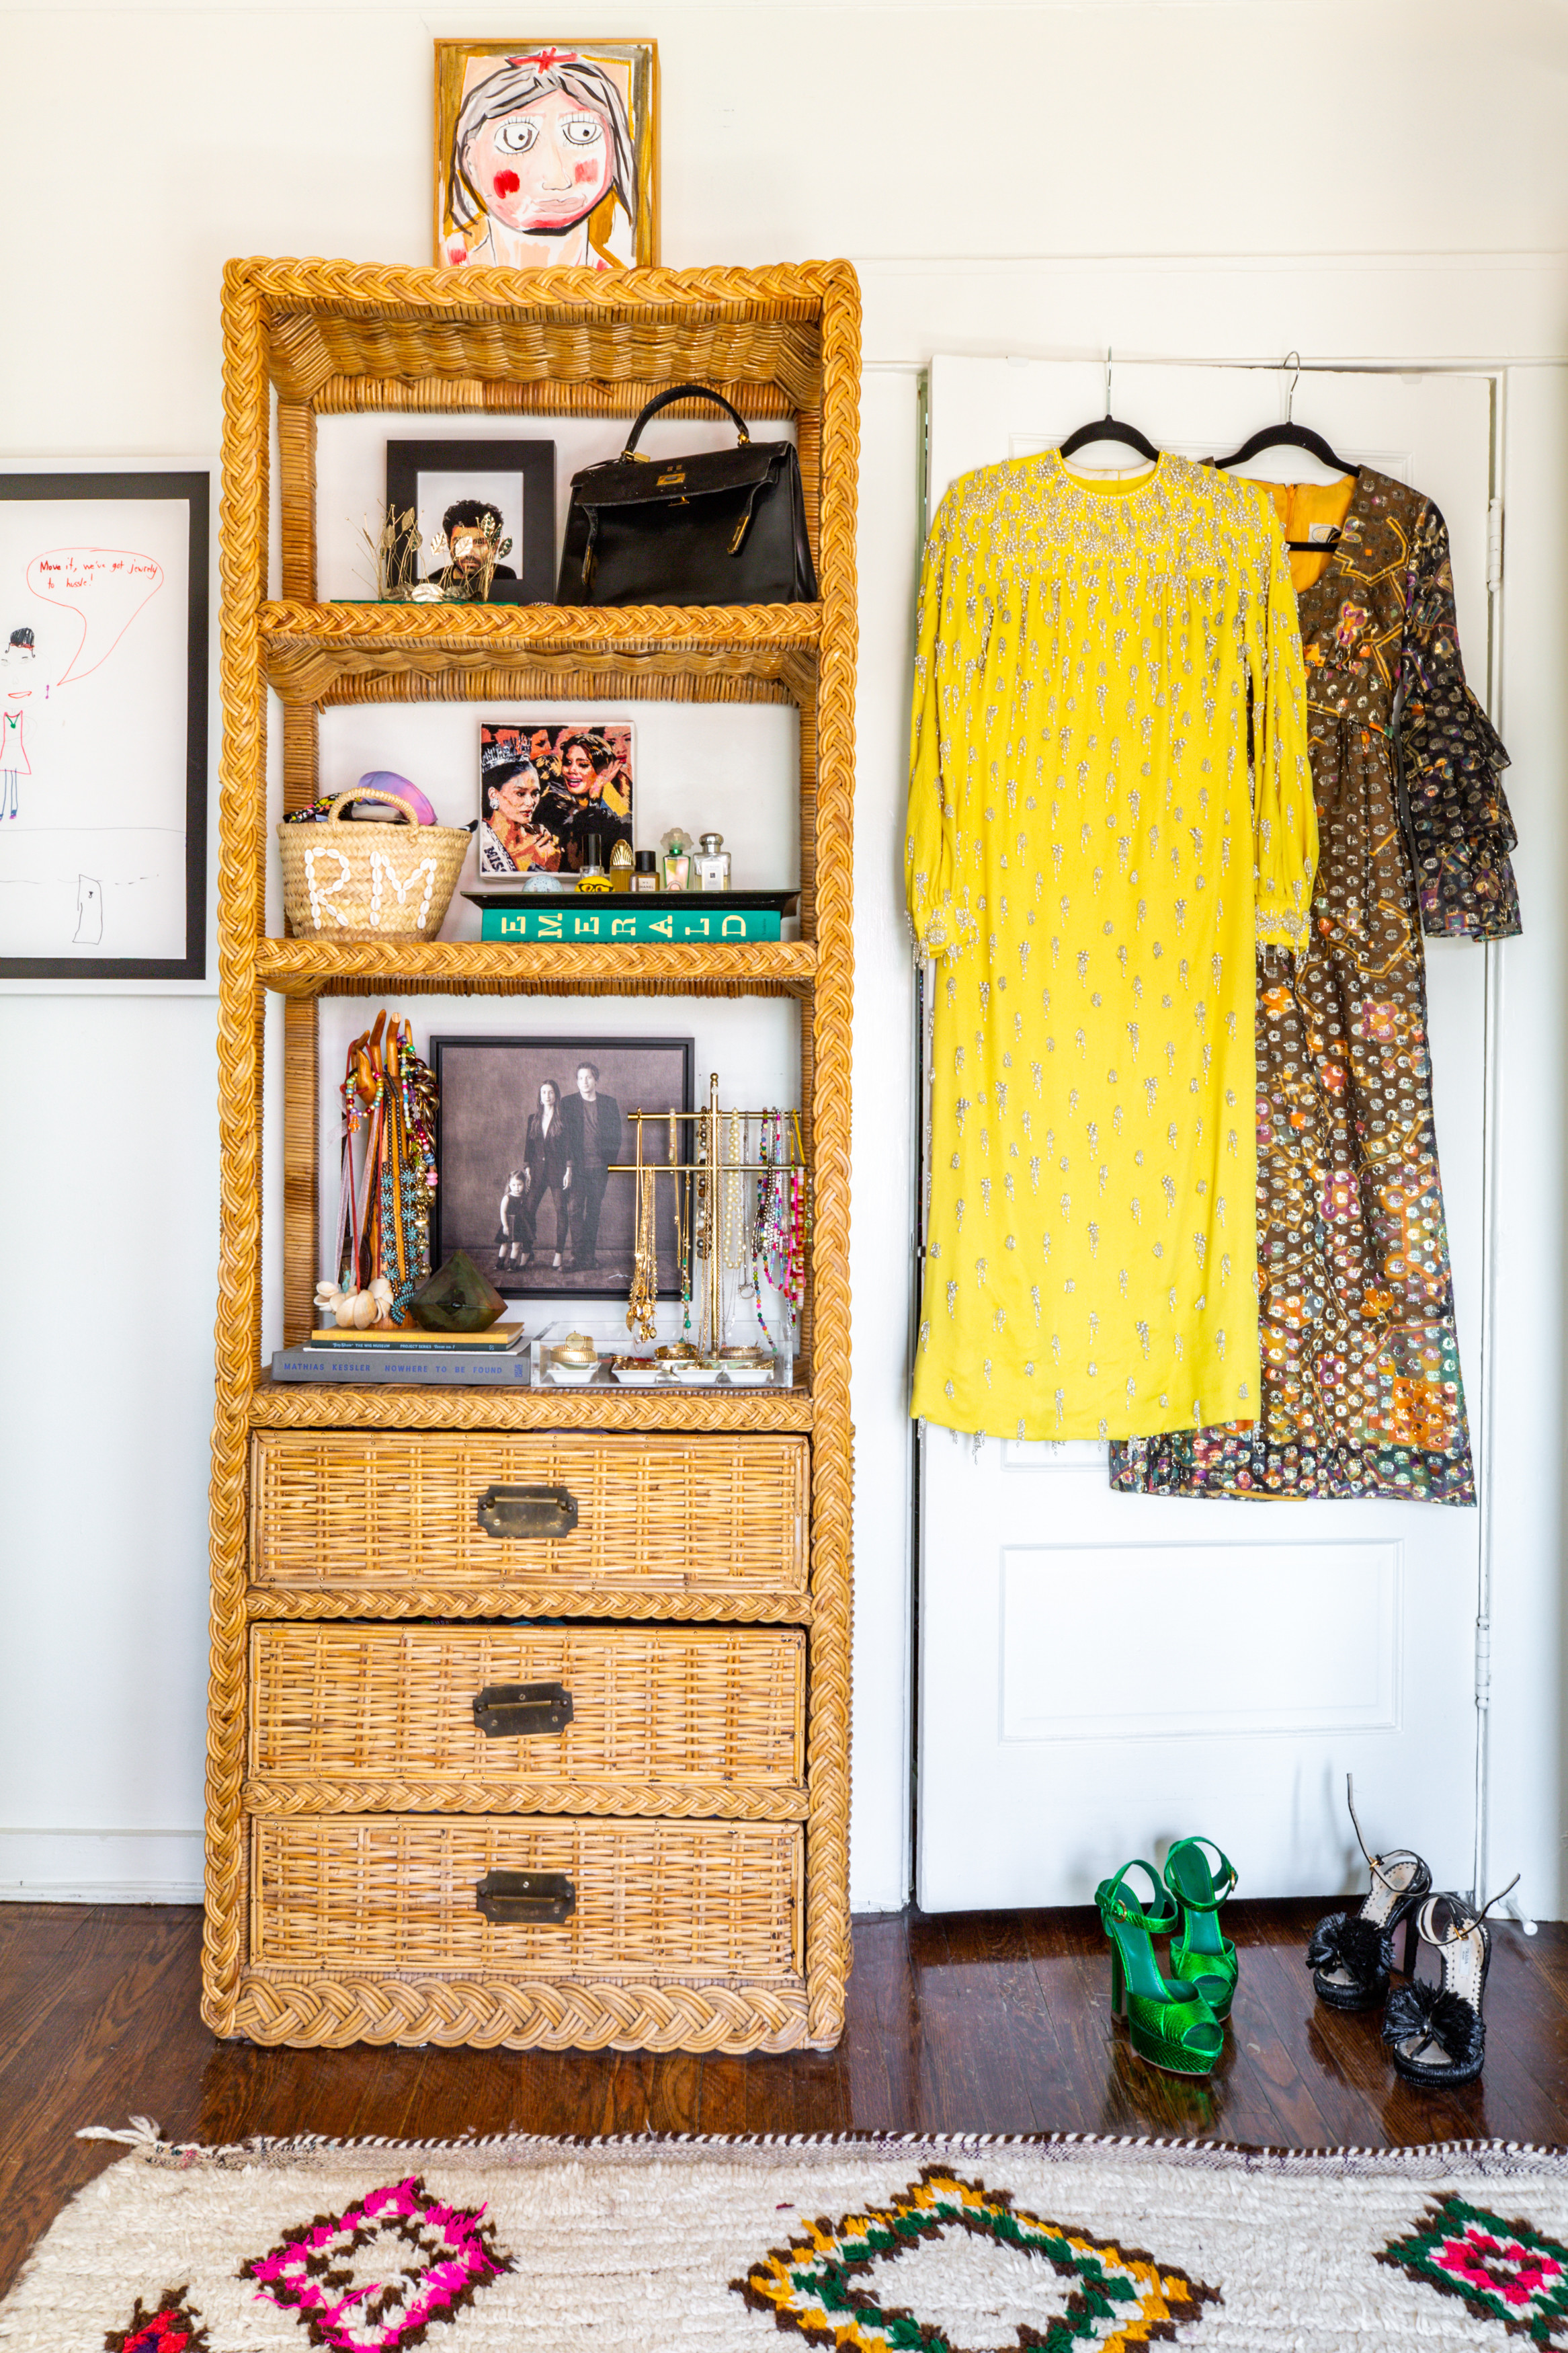 The home's closet is just as fashionable as the clothes that are stored here. Vintage Bookshelf | Vintage Moroccan Rug |Robert Gunderman Painting |Kim PterodactylEmbroidery |Kelly Lamb Sculpture.